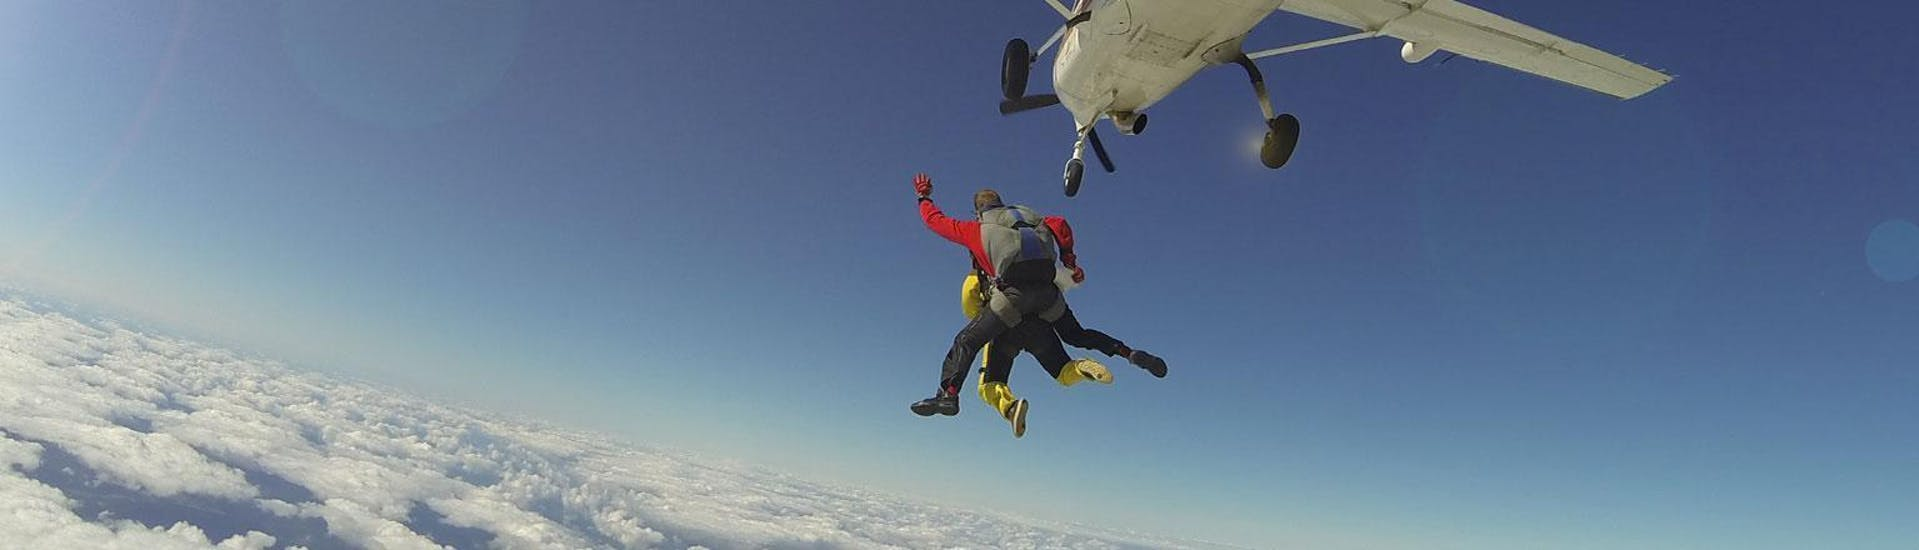 A tandem master from Skydive Spa & Cerfontaine has jumped with a passenger off the plane at an altitude of 4000m and are free falling above Spa.